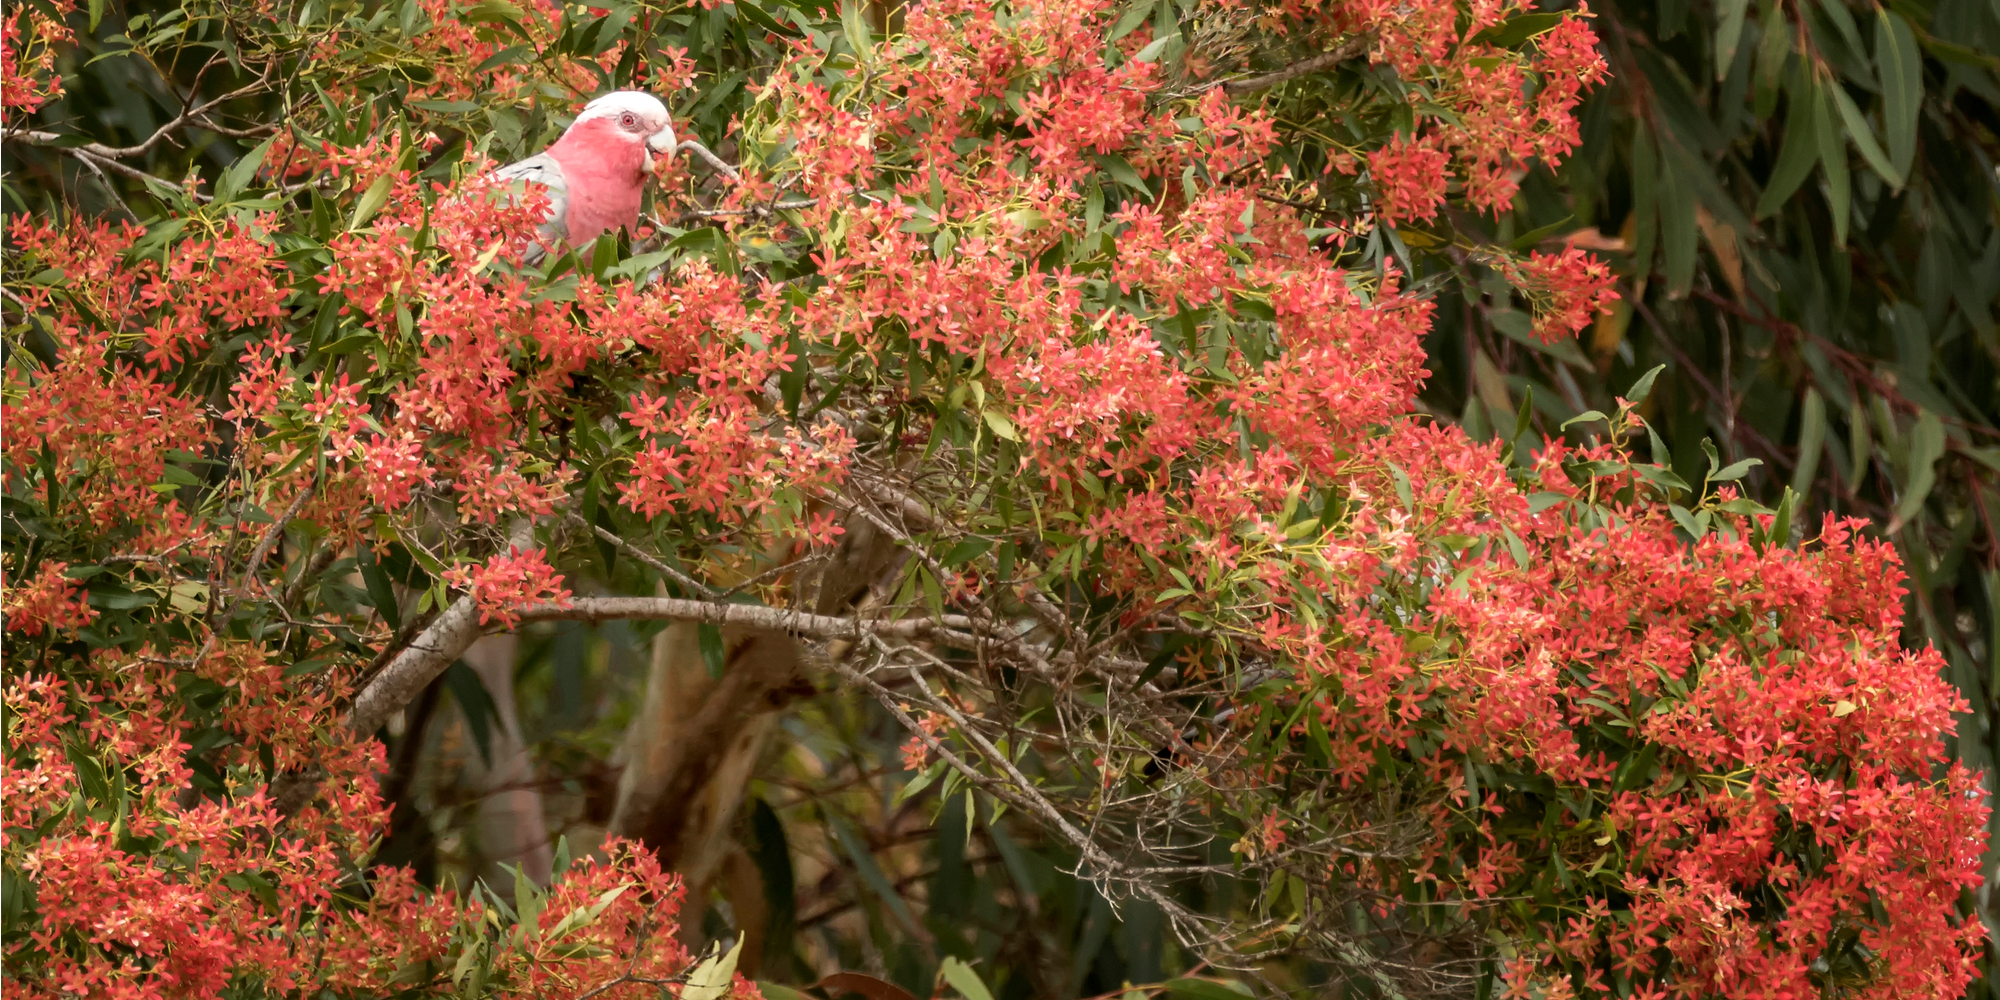 If you live in a drought susceptible area of the country, try one of these Australian garden landscaping ideas. The Christmas Bush is always a great option.